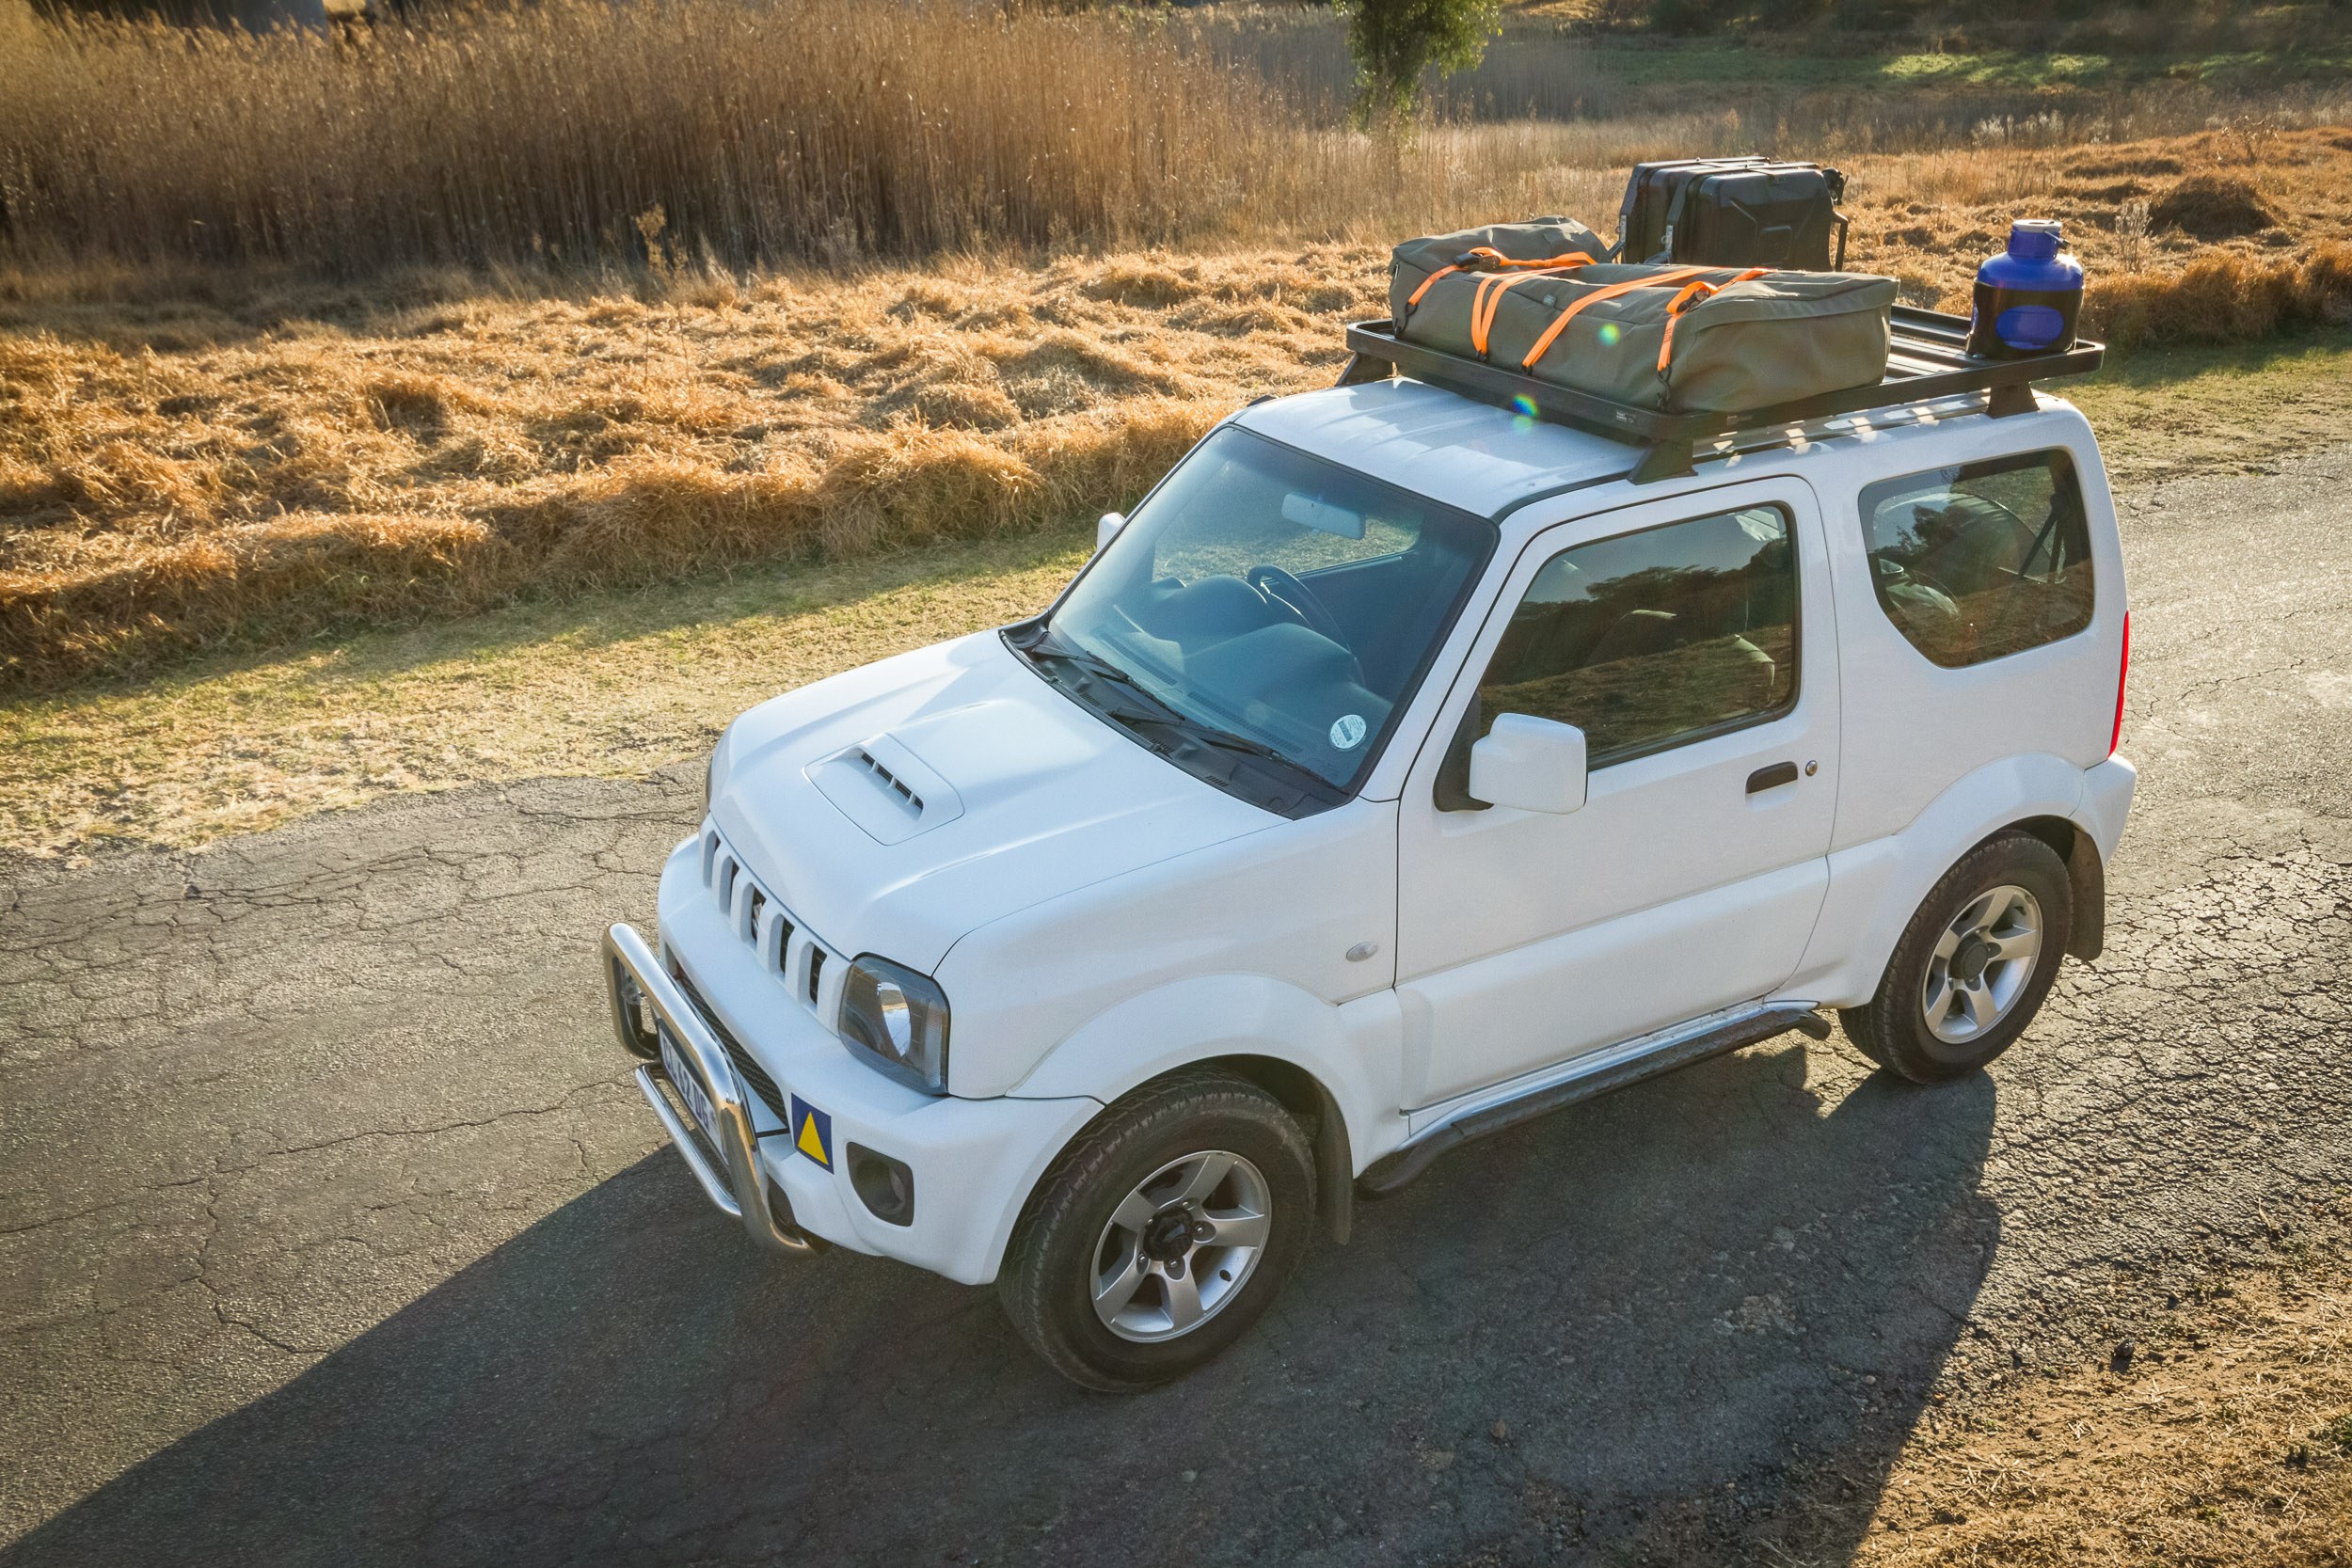 Affordable 4x4 car rental in South Africa with Tread Lite 4x4 hire